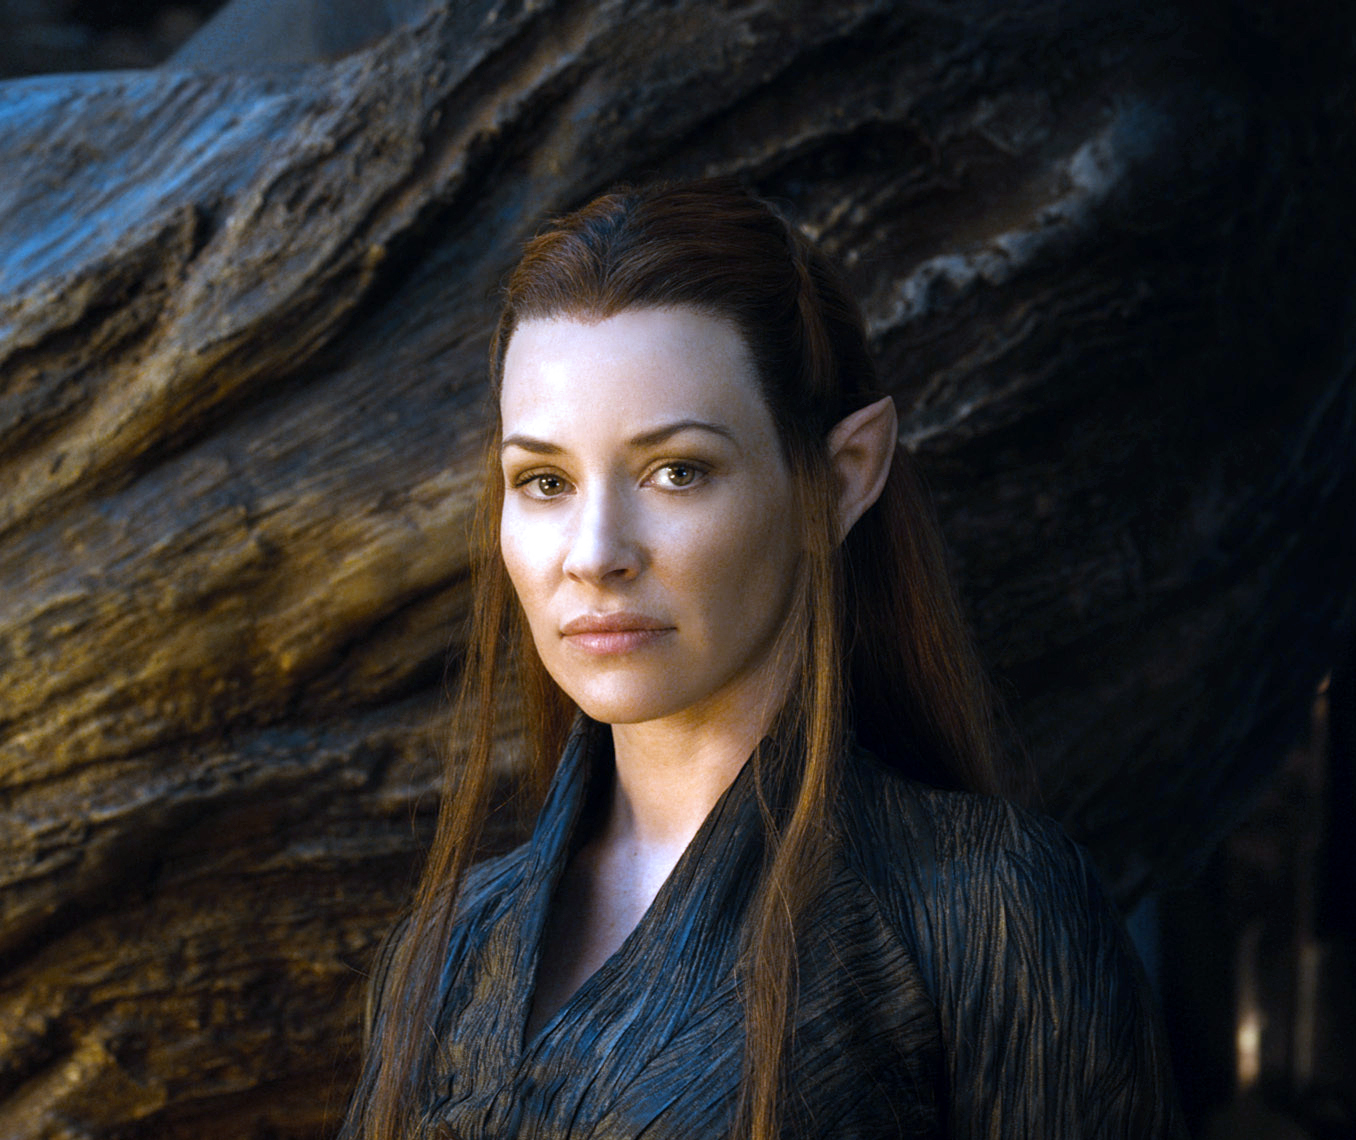 Tauriel - The Desolation of Smaug - Happy New Year image ...